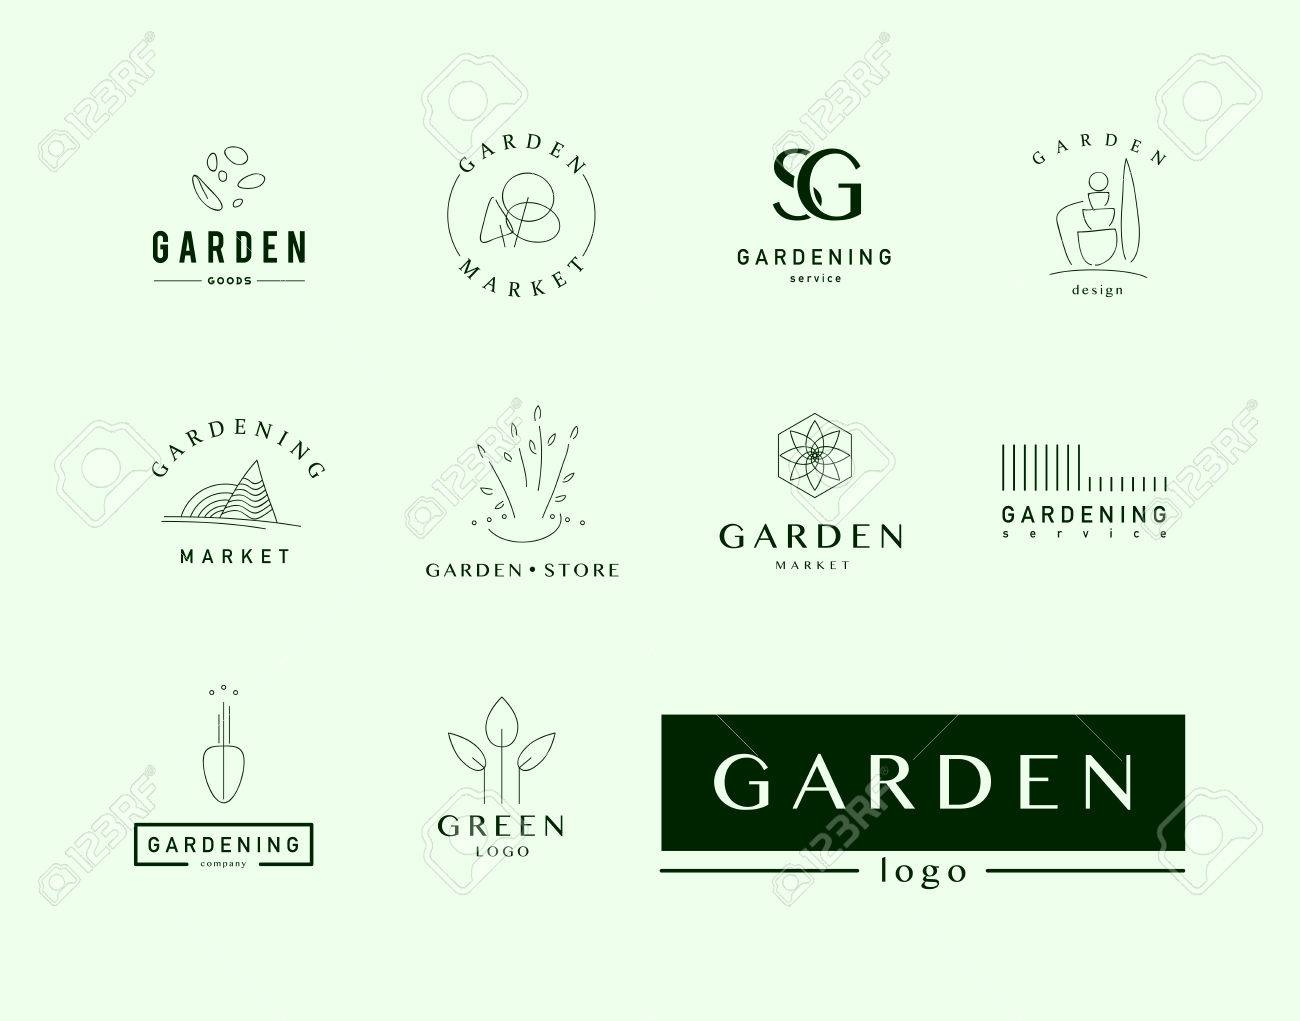 Merveilleux Collection Of Vector Flat Elegant Logo Template For Gardening Companies.  Gardening Service Brand Mark Graphic